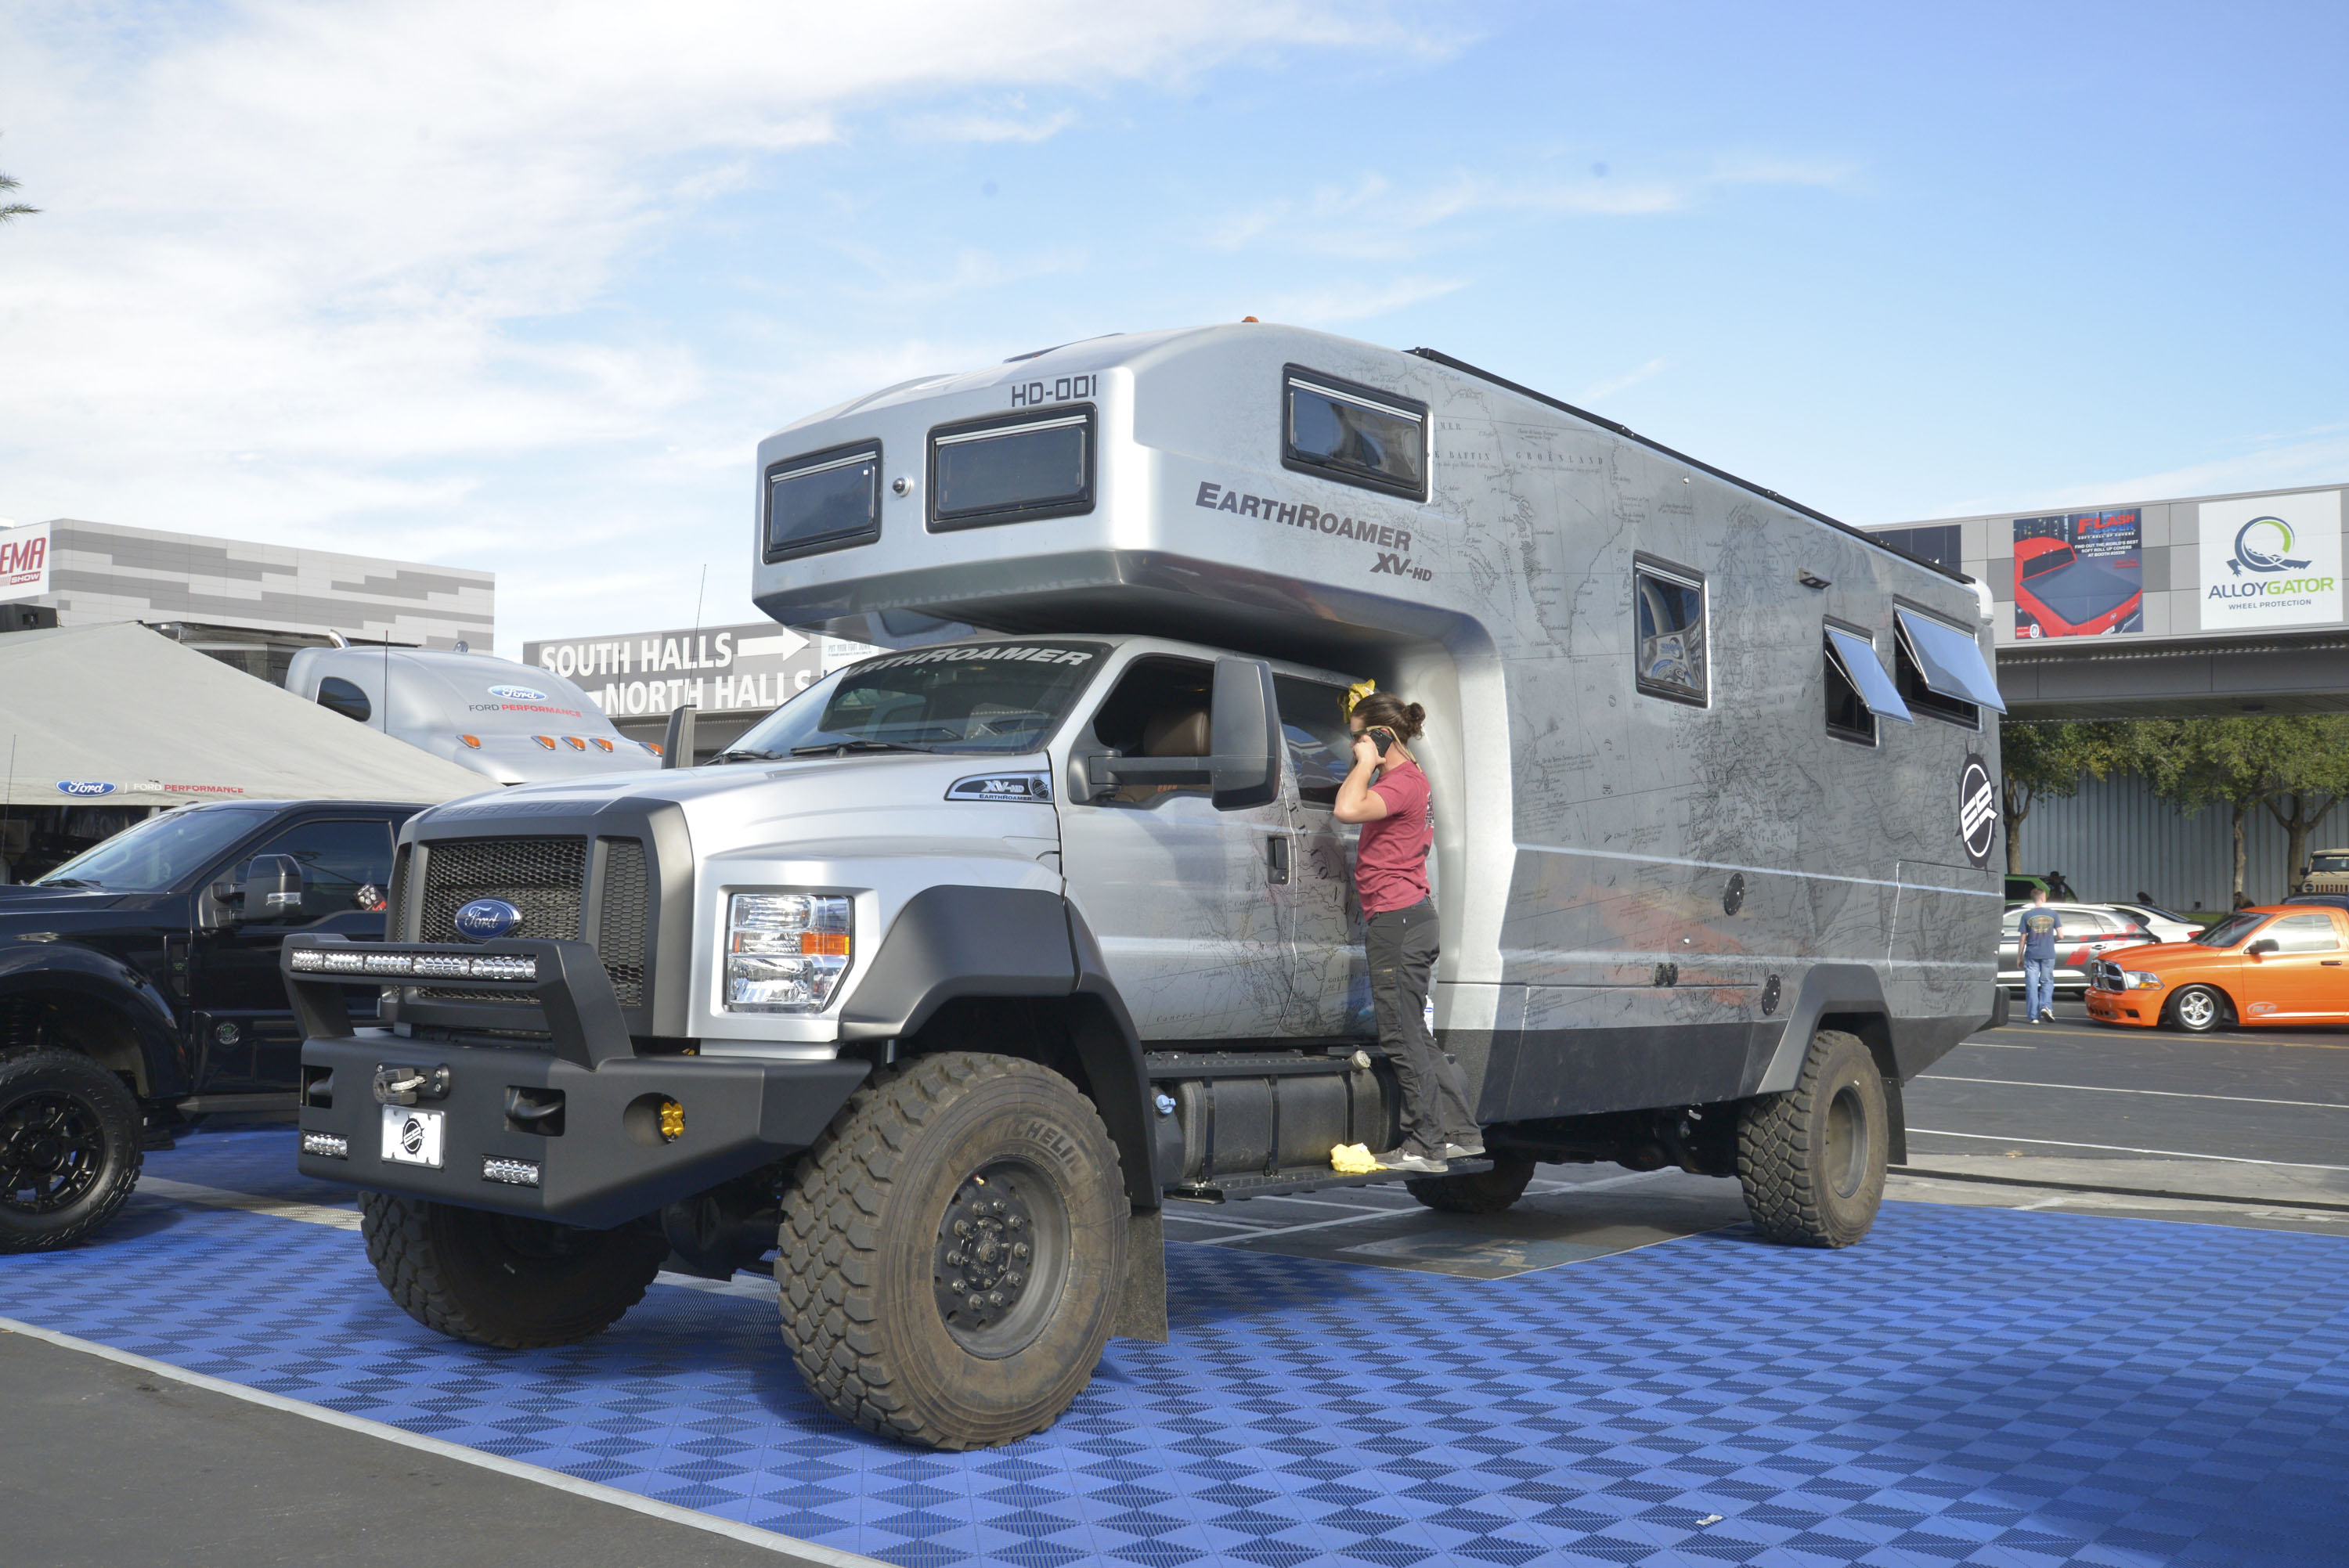 Ford F Series Reviews Specs Prices Photos And Videos Top Speed 2000 F450 Fuel Tank Earthroamers New 750 Xv Hd Is A 15m Off Roading Rv